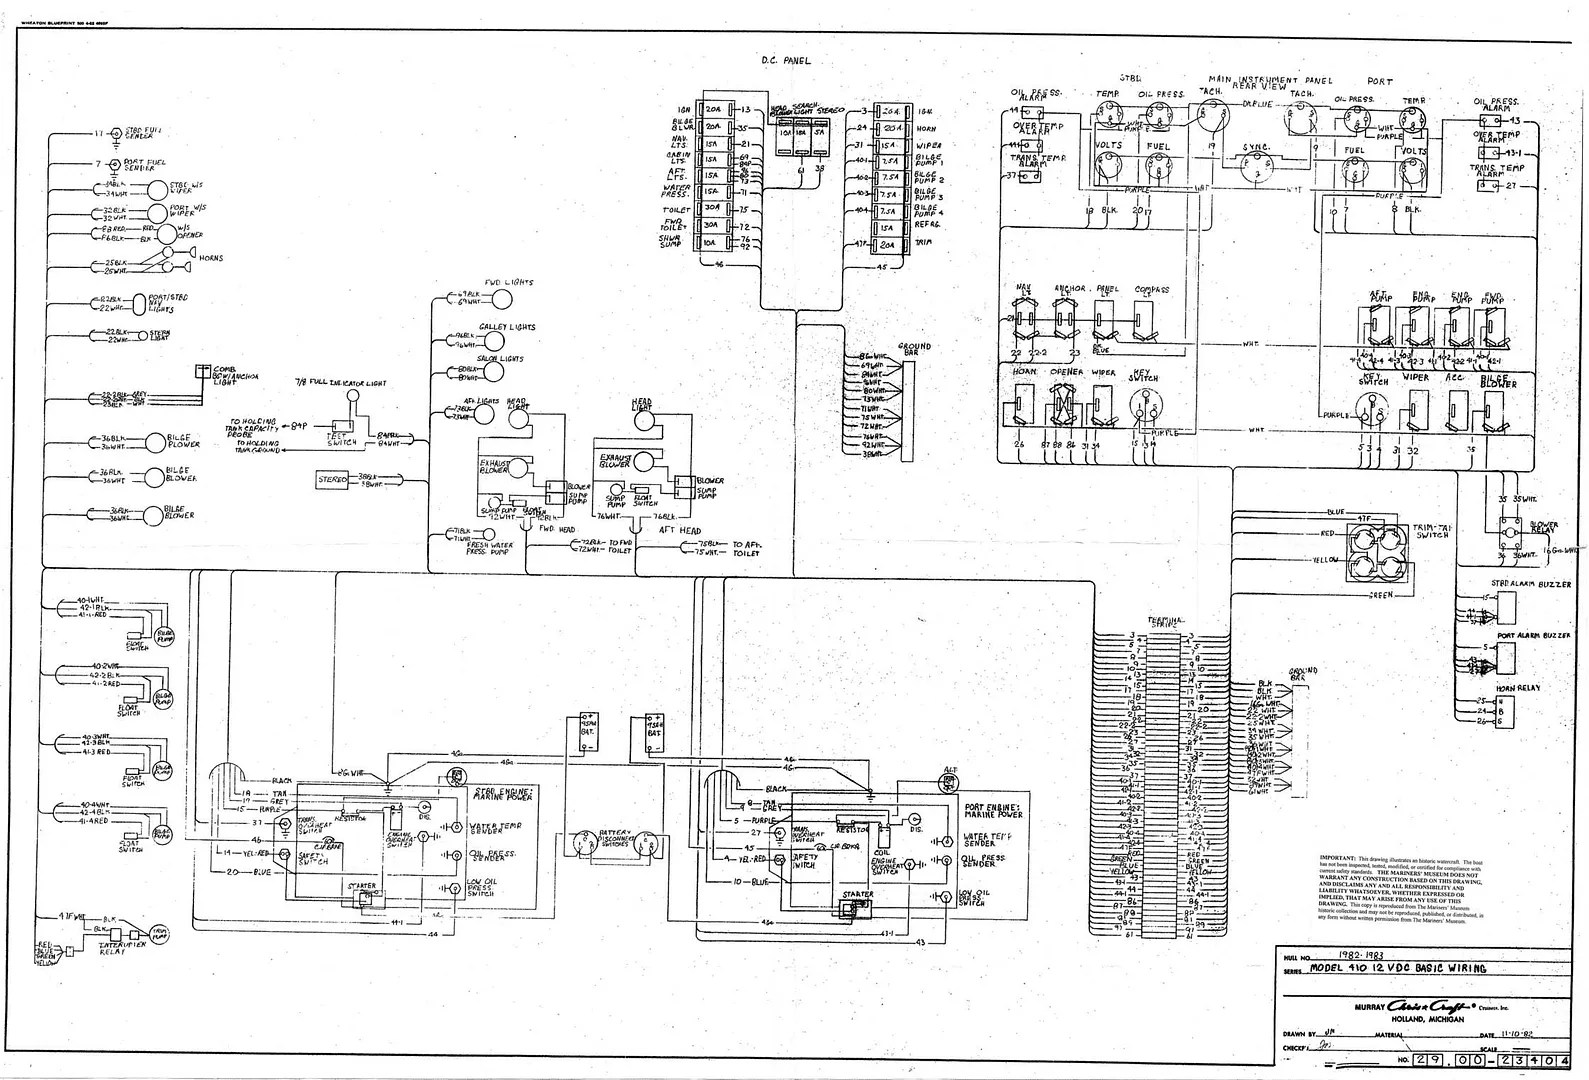 hight resolution of 1996 lowe boat wiring diagram wiring diagrams 1986 champion bass boat wiring diagram boat wiring diagram 19